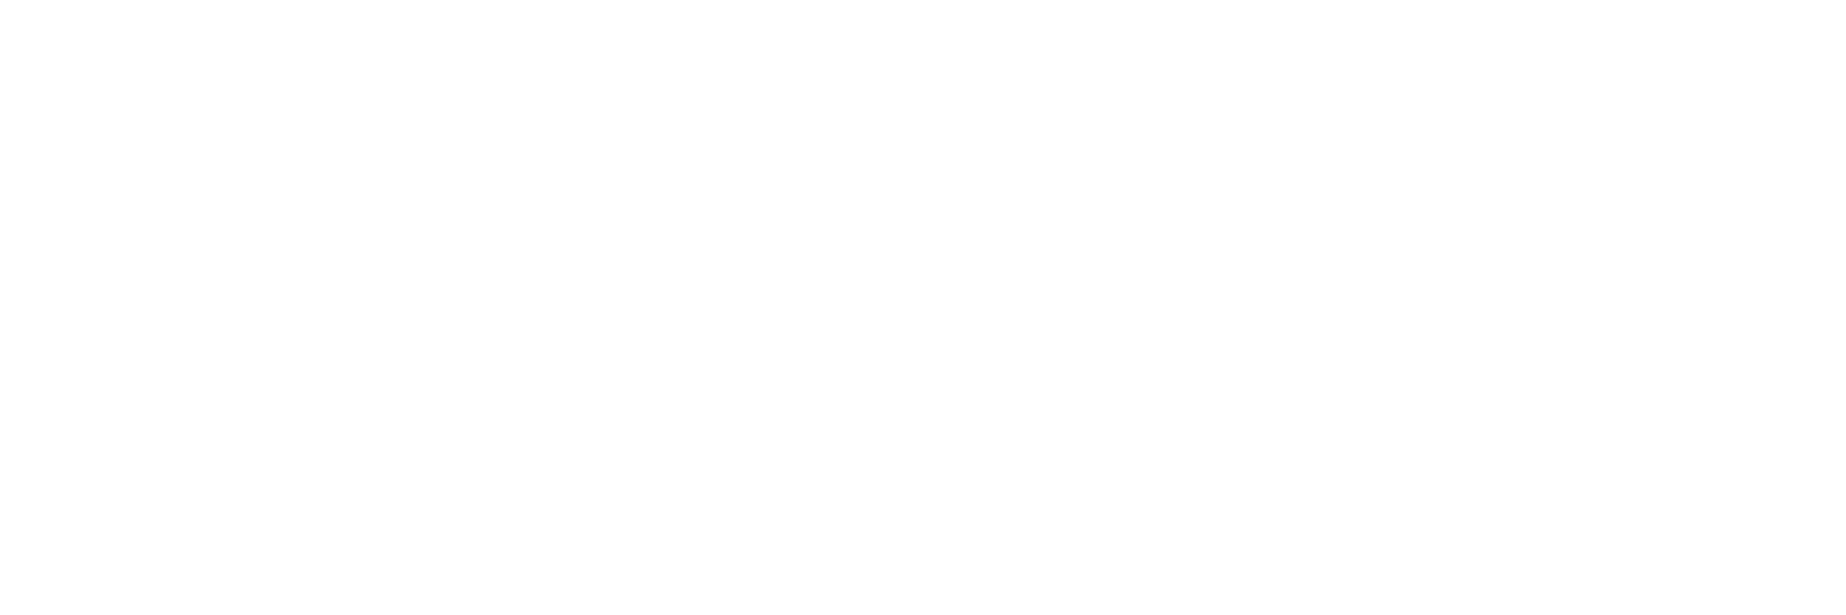 Higher Ground Hirst Lock